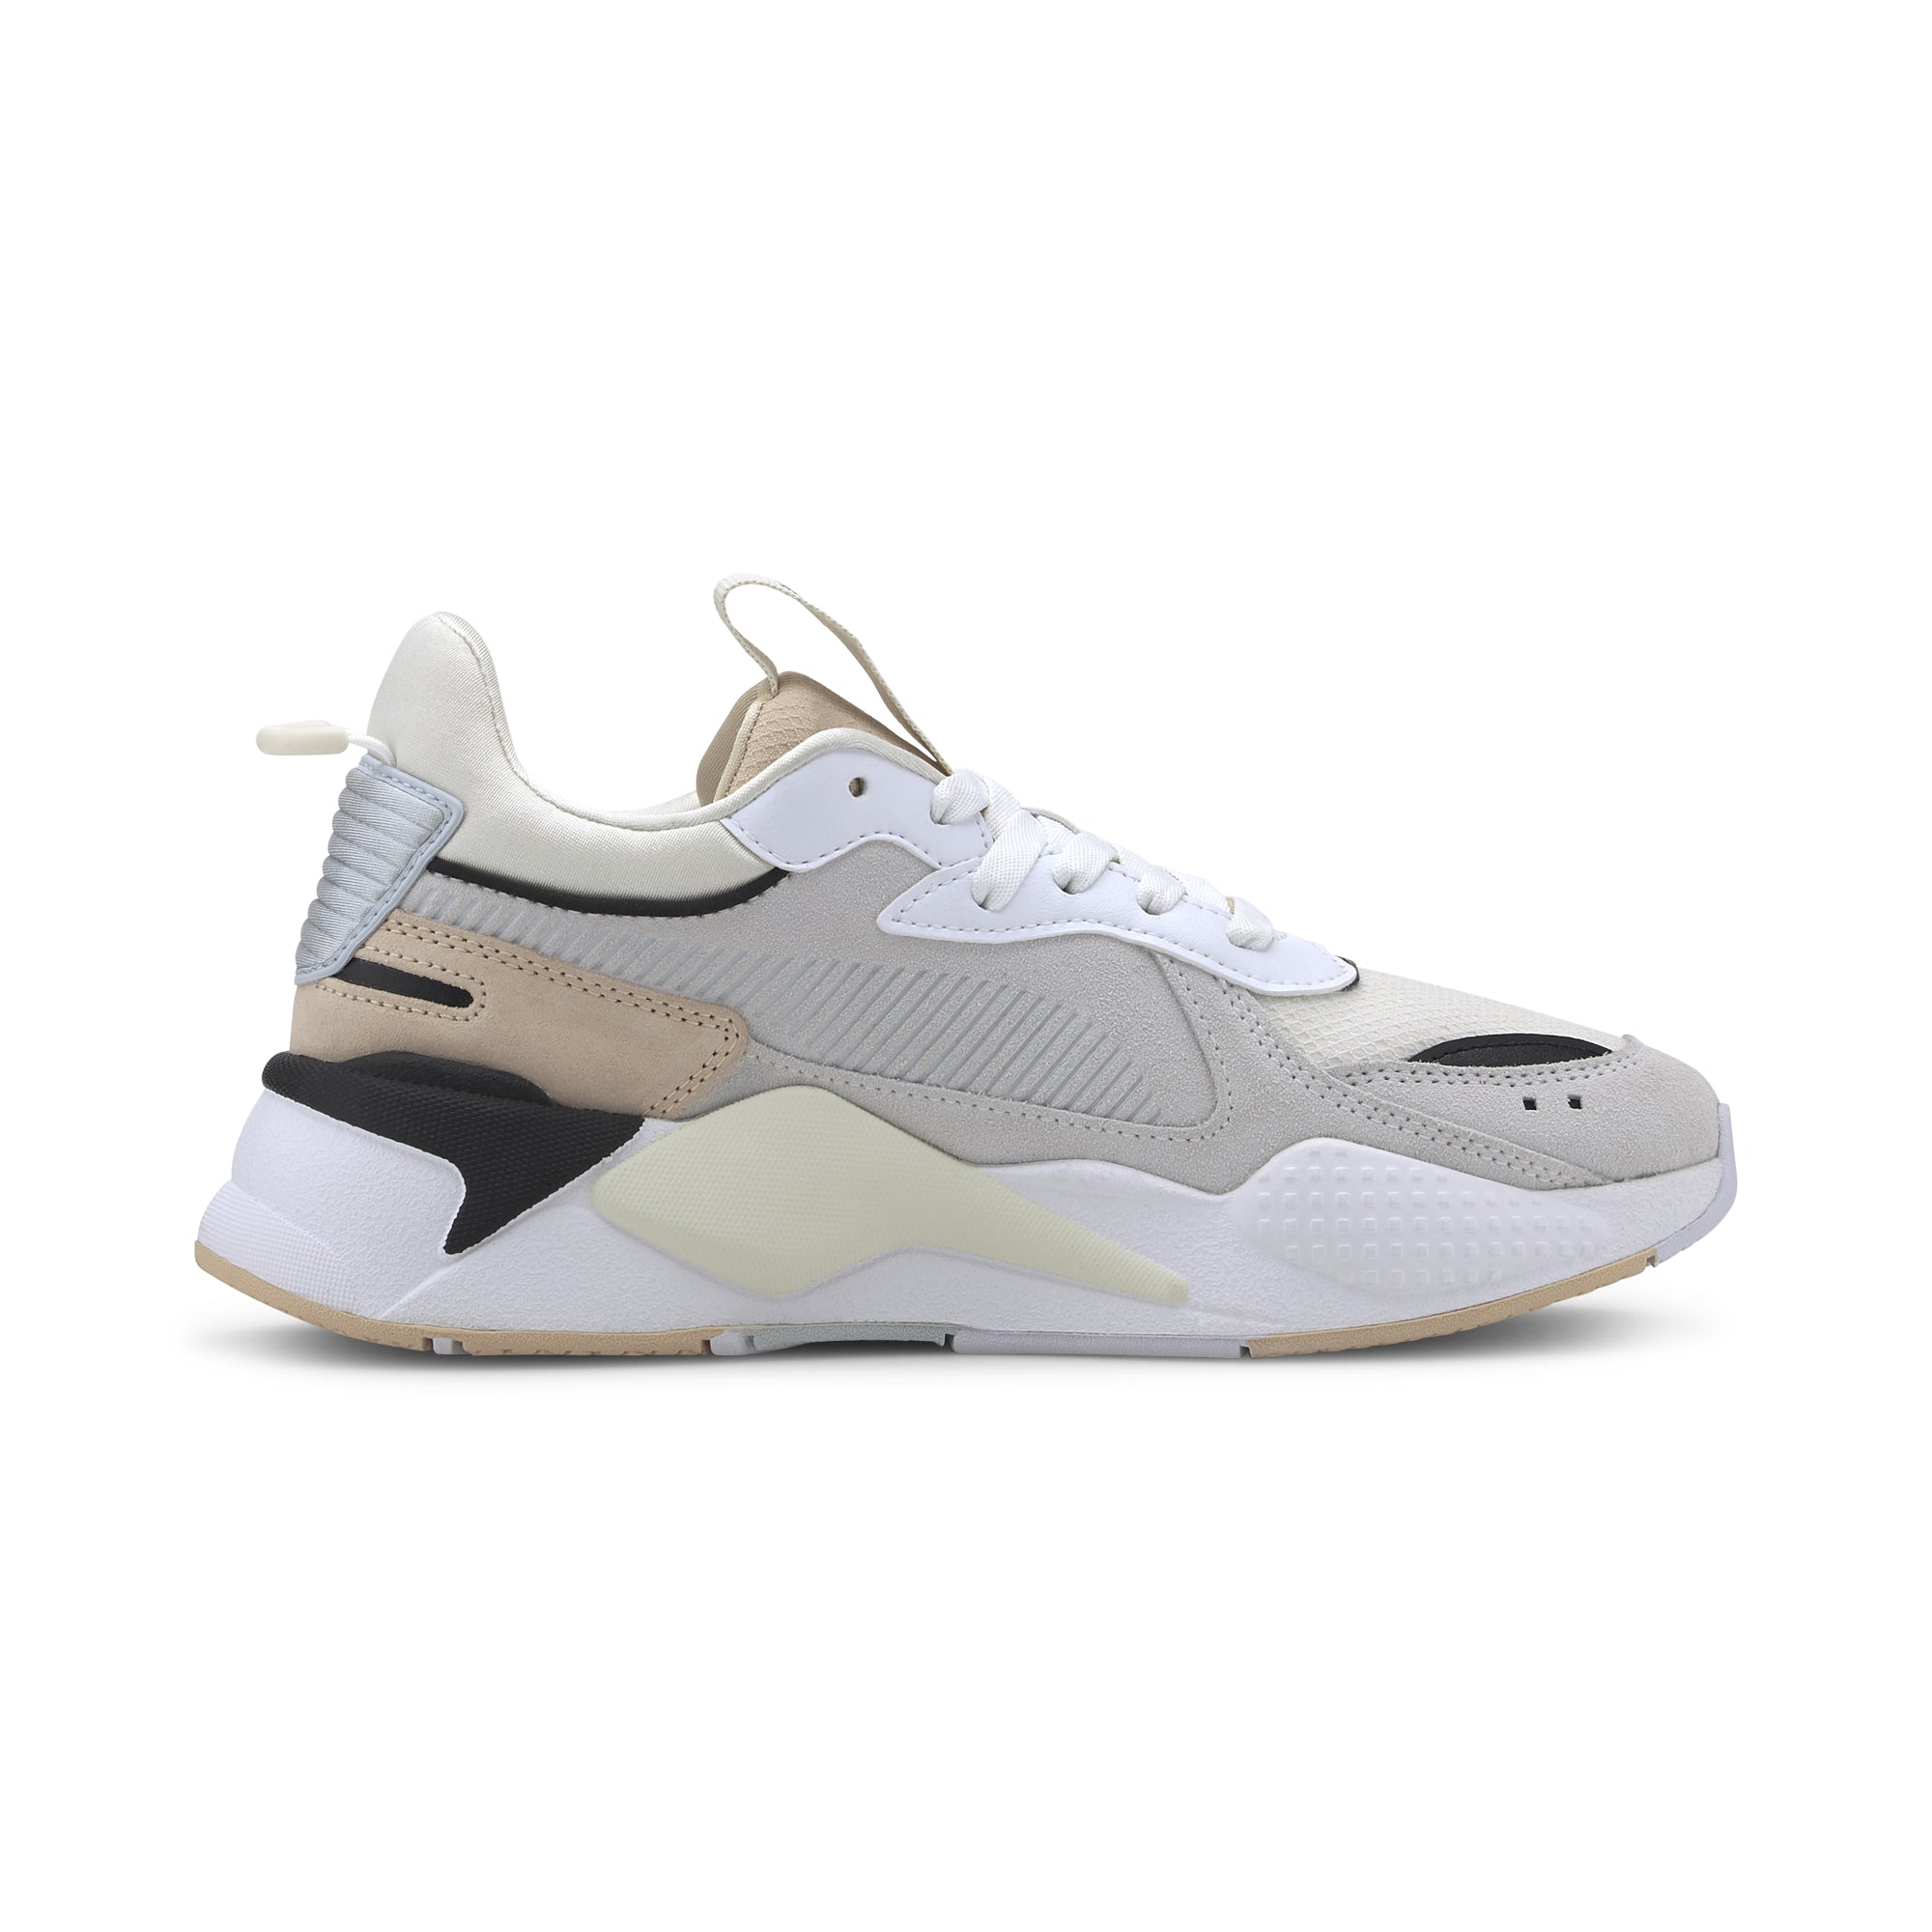 Puma RS X Reinvent 371008 05 sneakers whitenatural